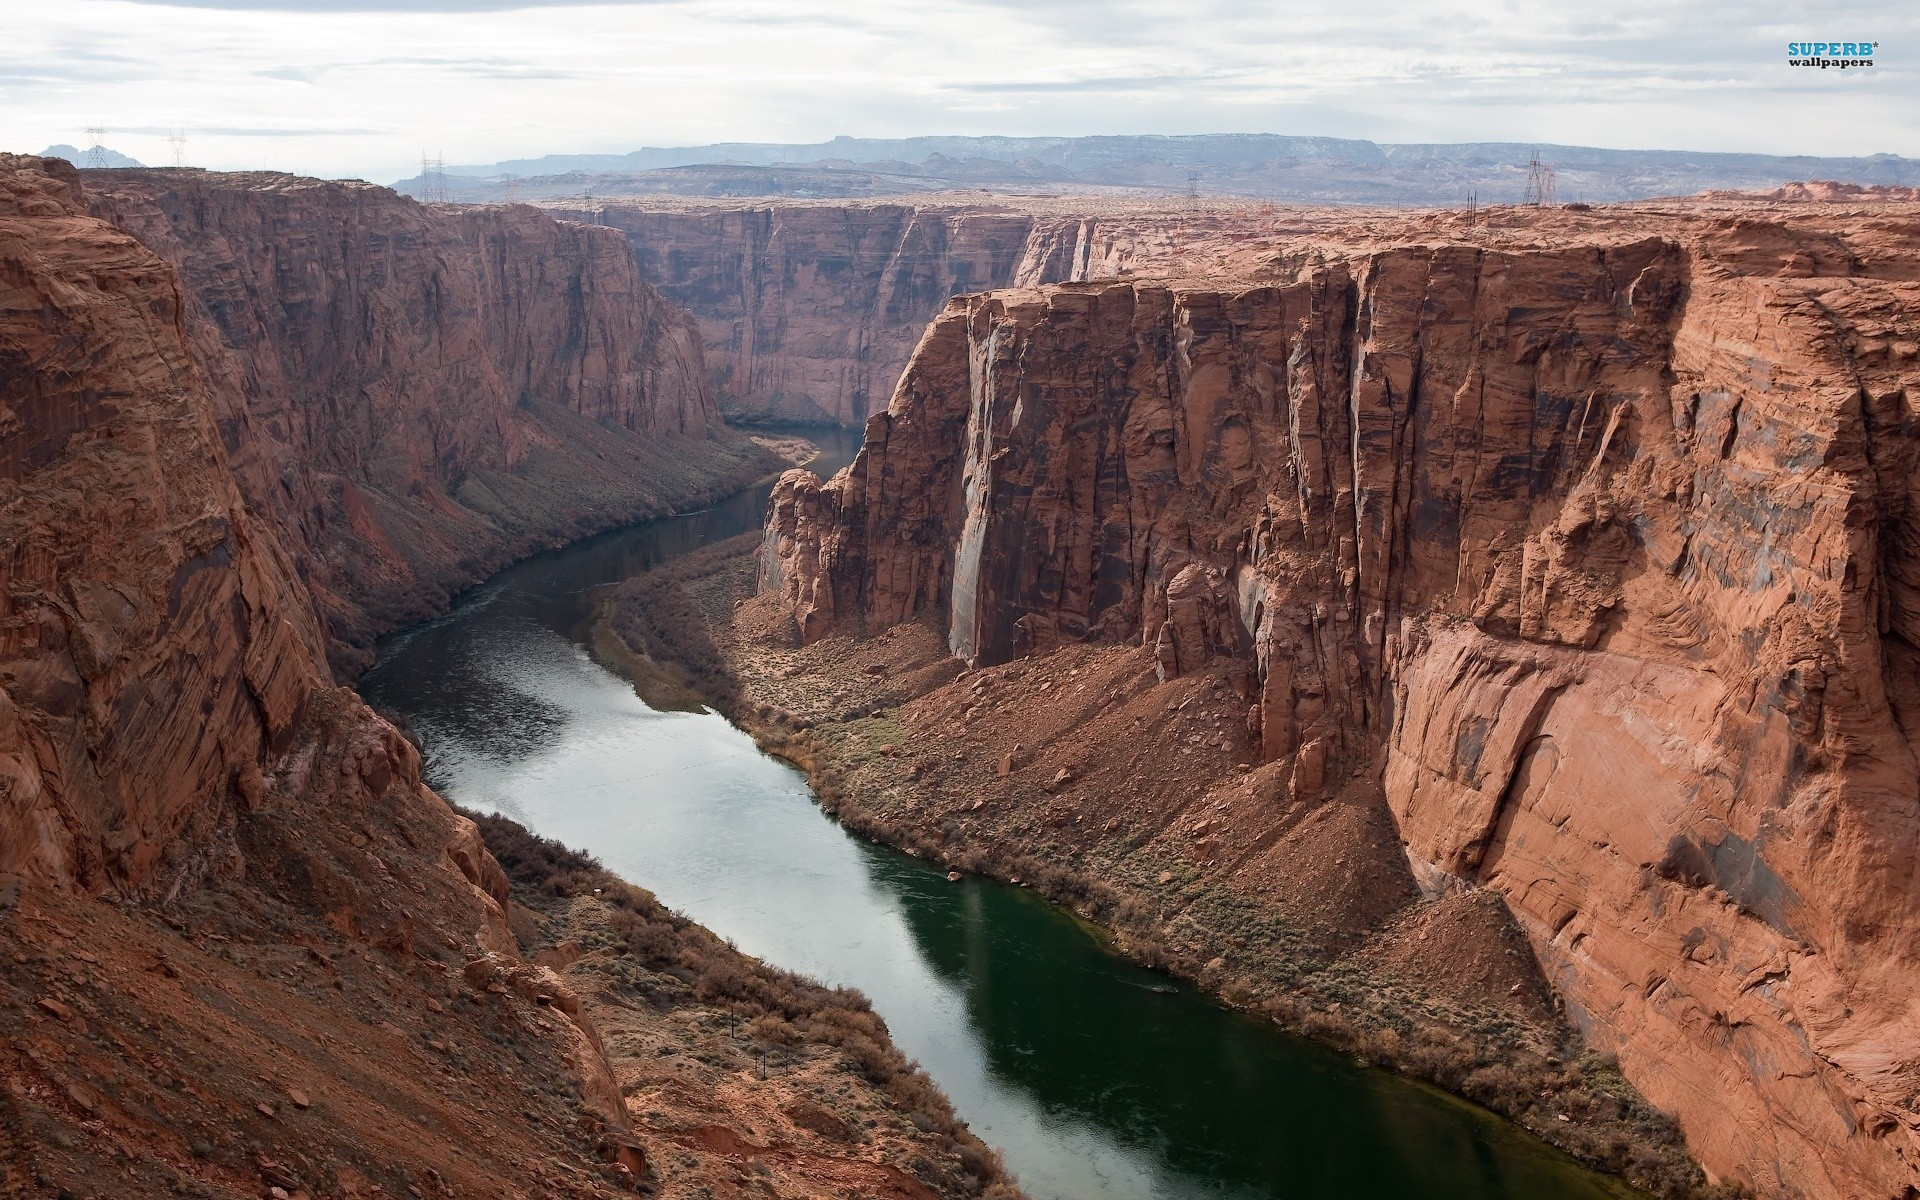 Colorado River wallpaper 1920x1200